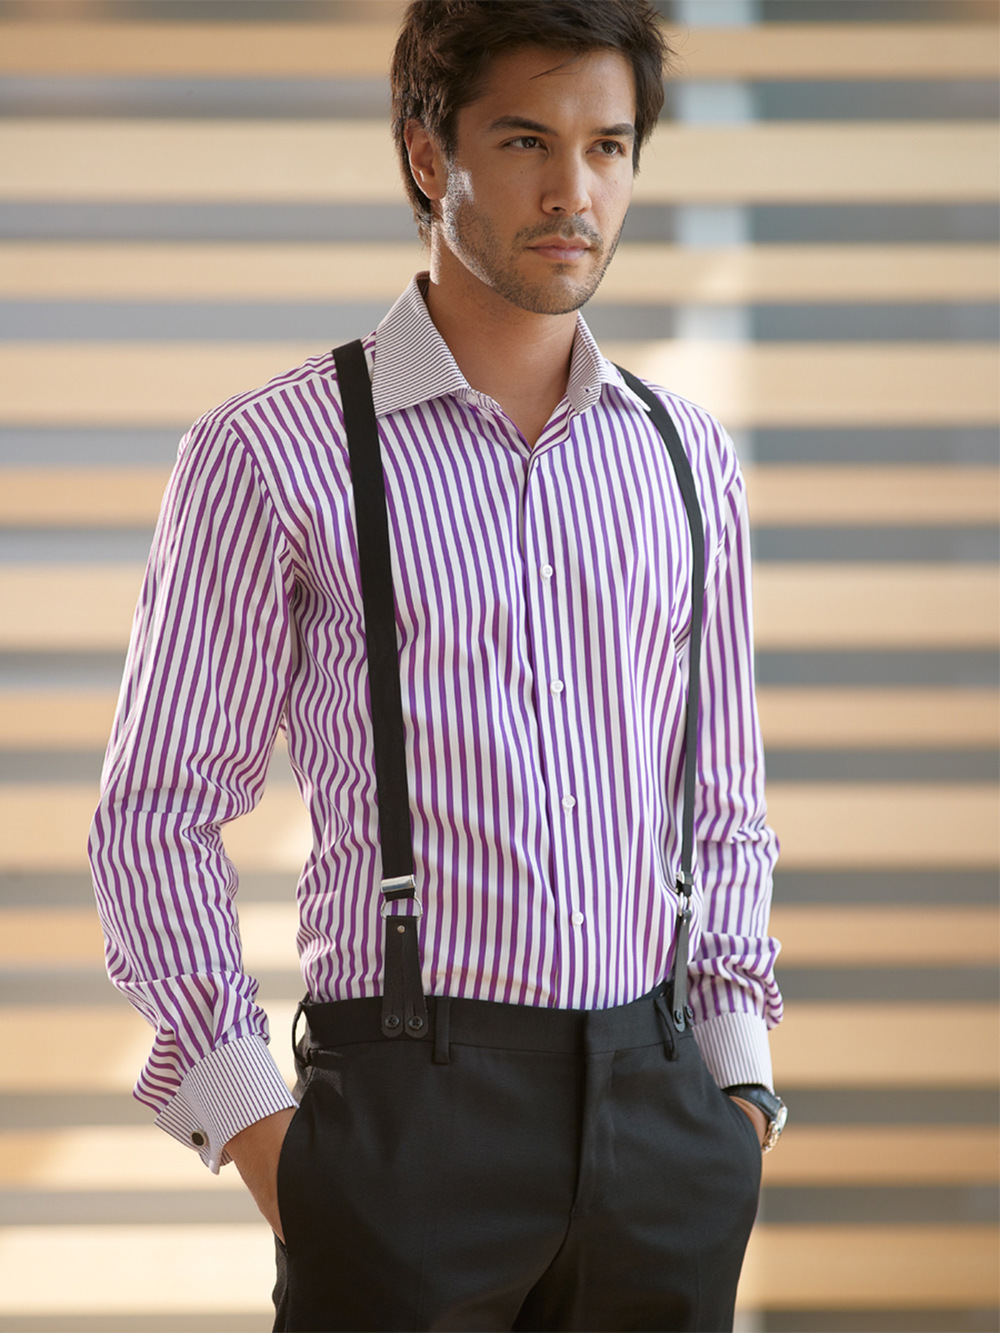 Etrusca-Collezione-Uno-Gentiuomo-Purple-Stripe-Contrast-Stripe-Collar-Cuff-Model-Indoors-001-RT.jpg